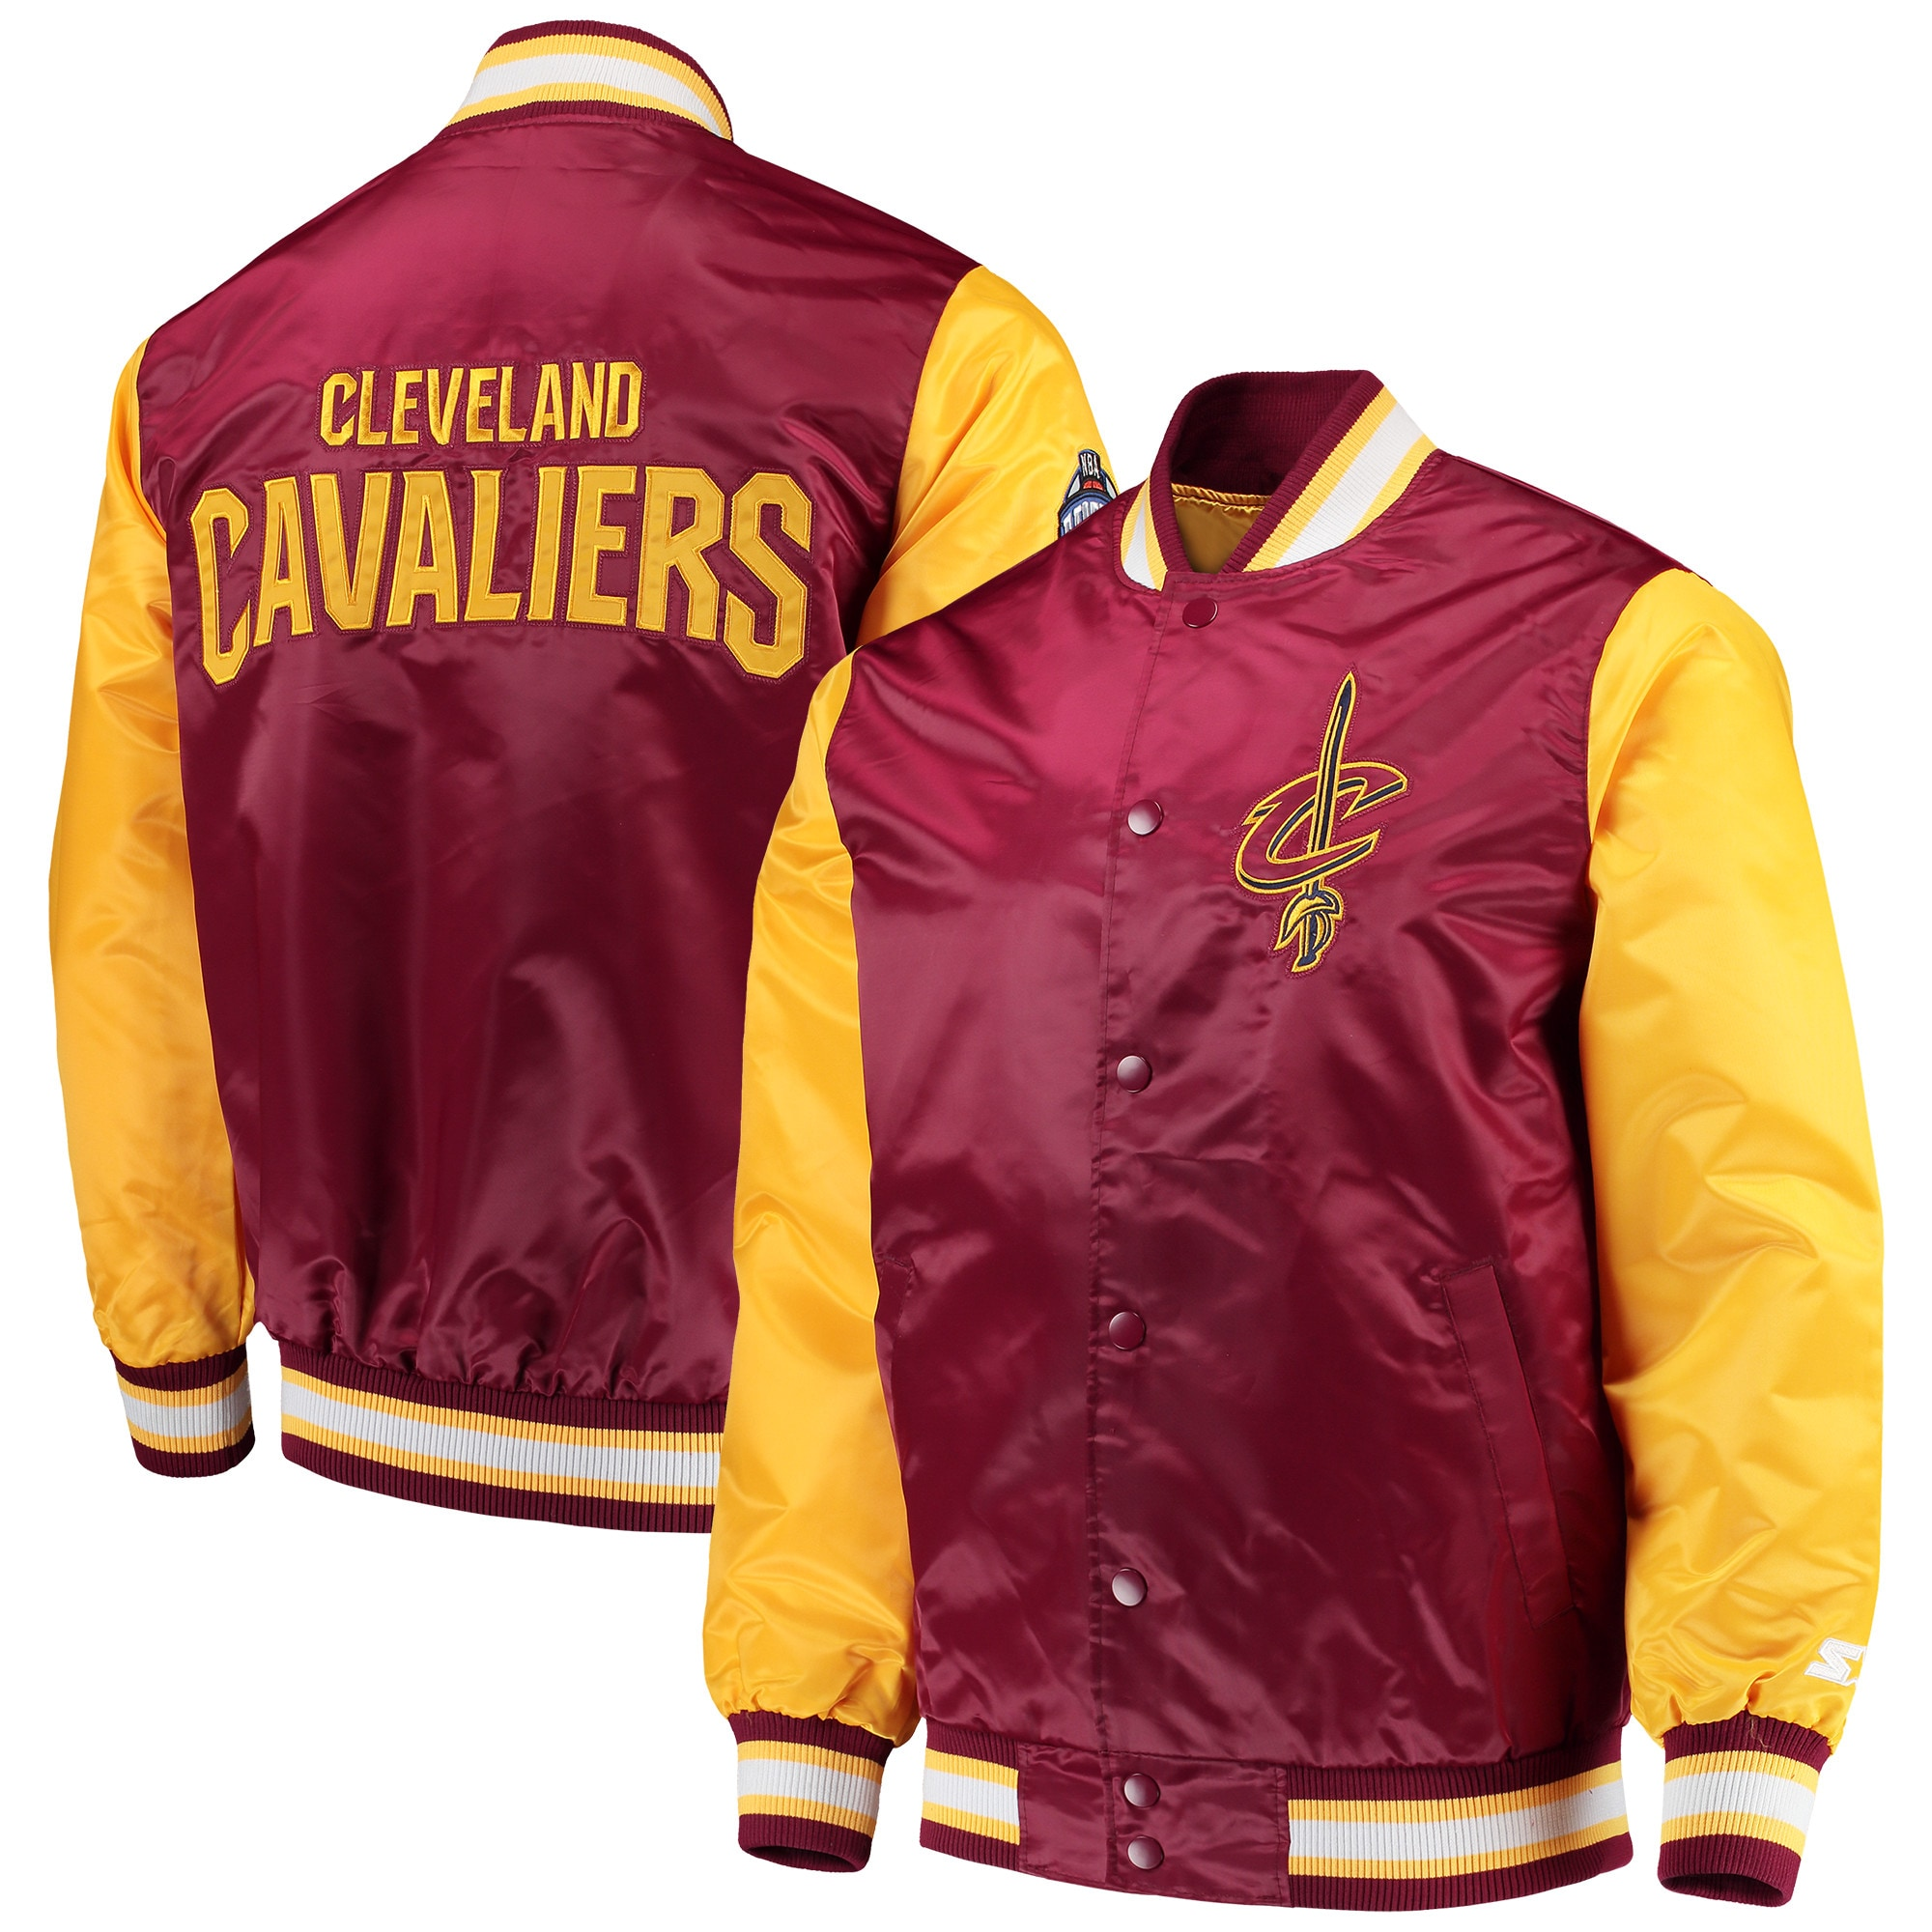 Cleveland Cavaliers Starter Rookie Full Snap Jacket - Wine/Gold